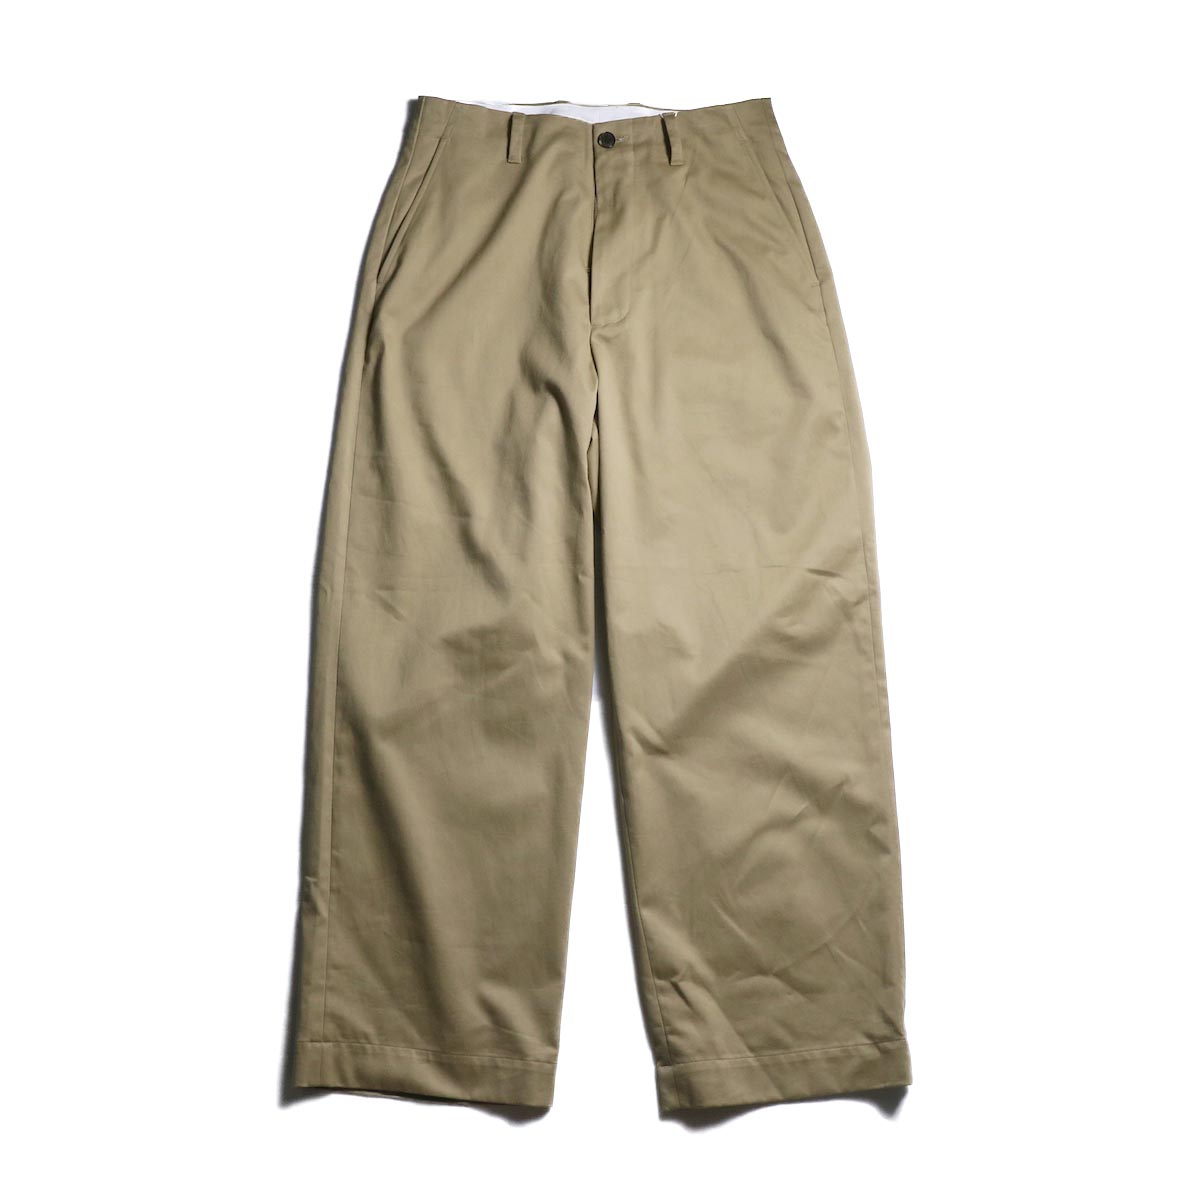 UNIVERSAL PRODUCTS / No Tuck Wide Chino Trousers -Camel